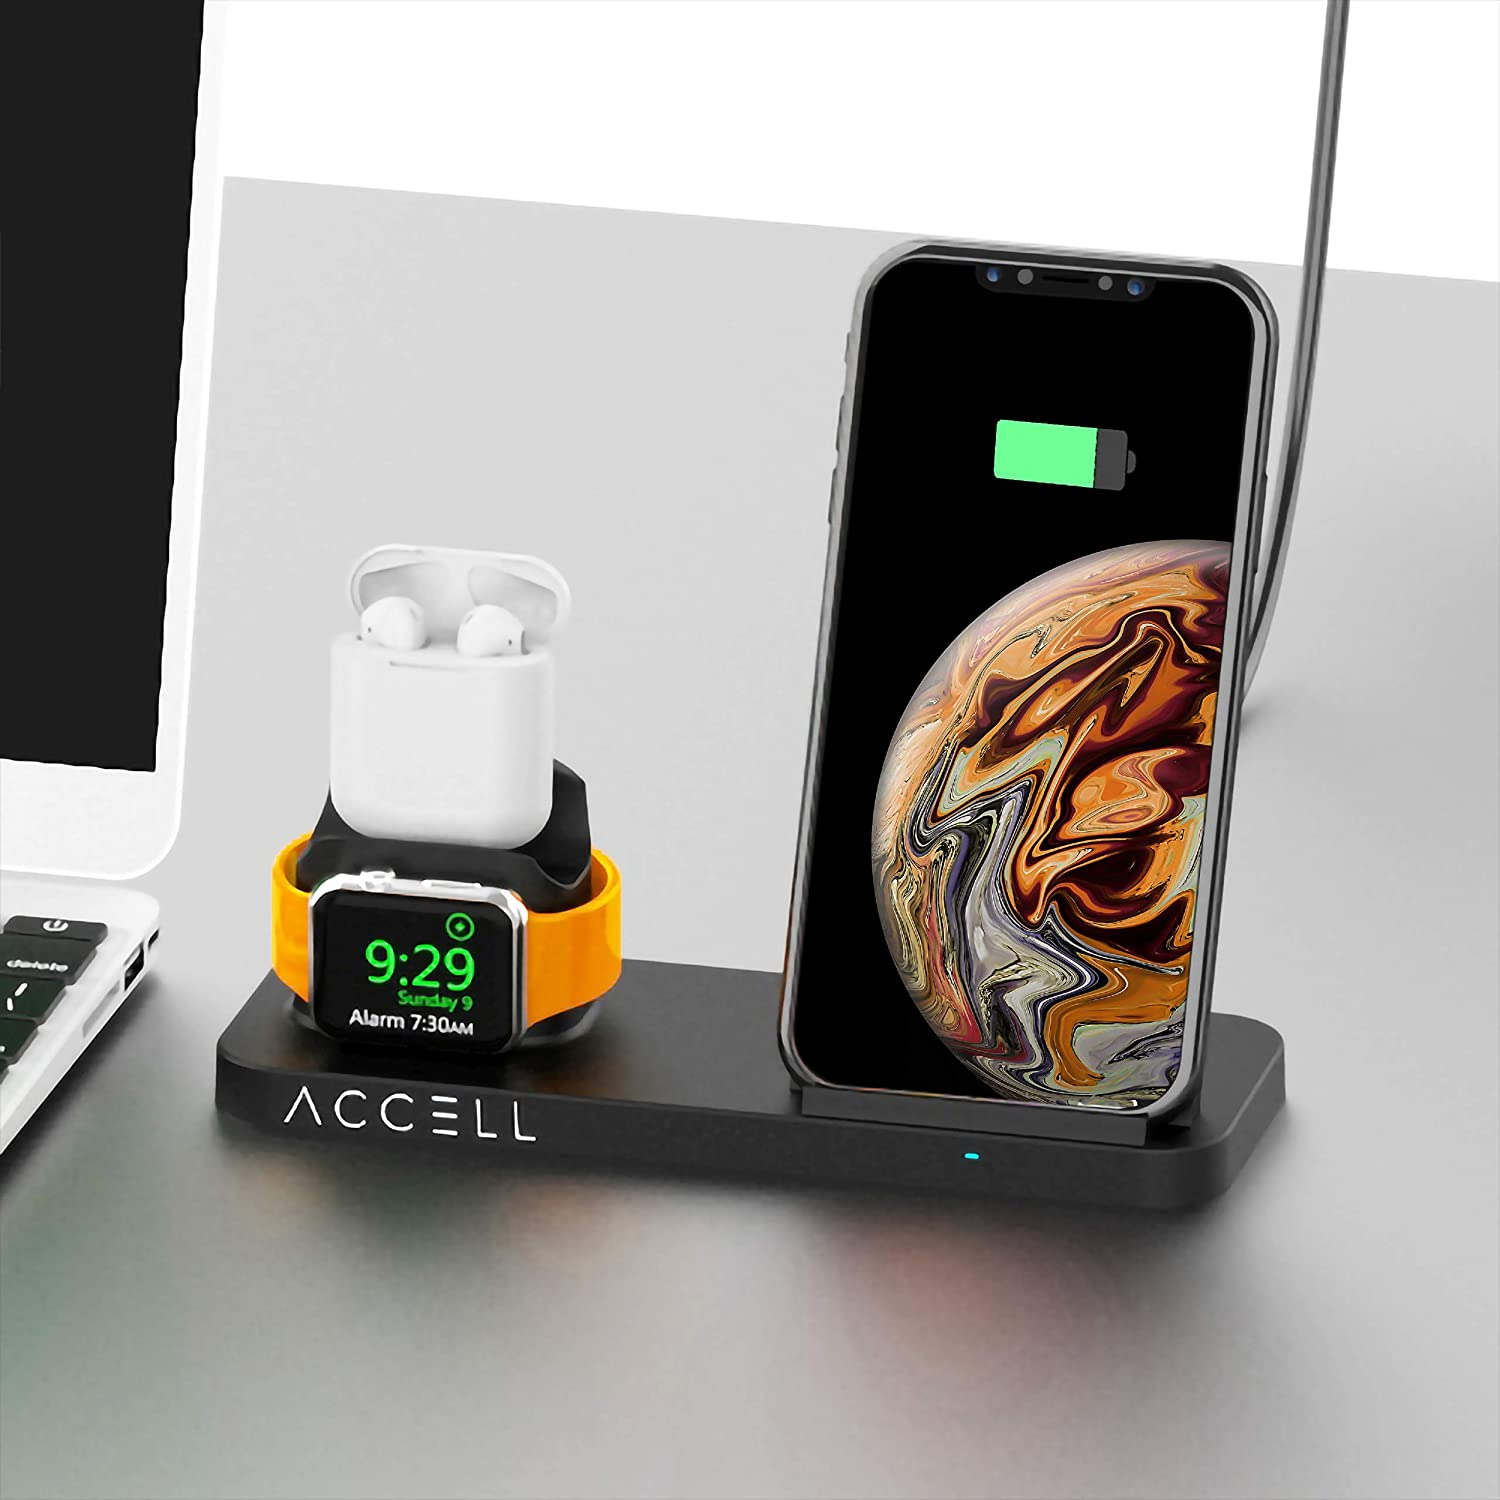 Accell Power 3-in-1 Fast-Wireless Charger - 3 in 1 Wireless Charger for Smartphone, Apple Watch, and Airpods - Qi-Compatible, Black